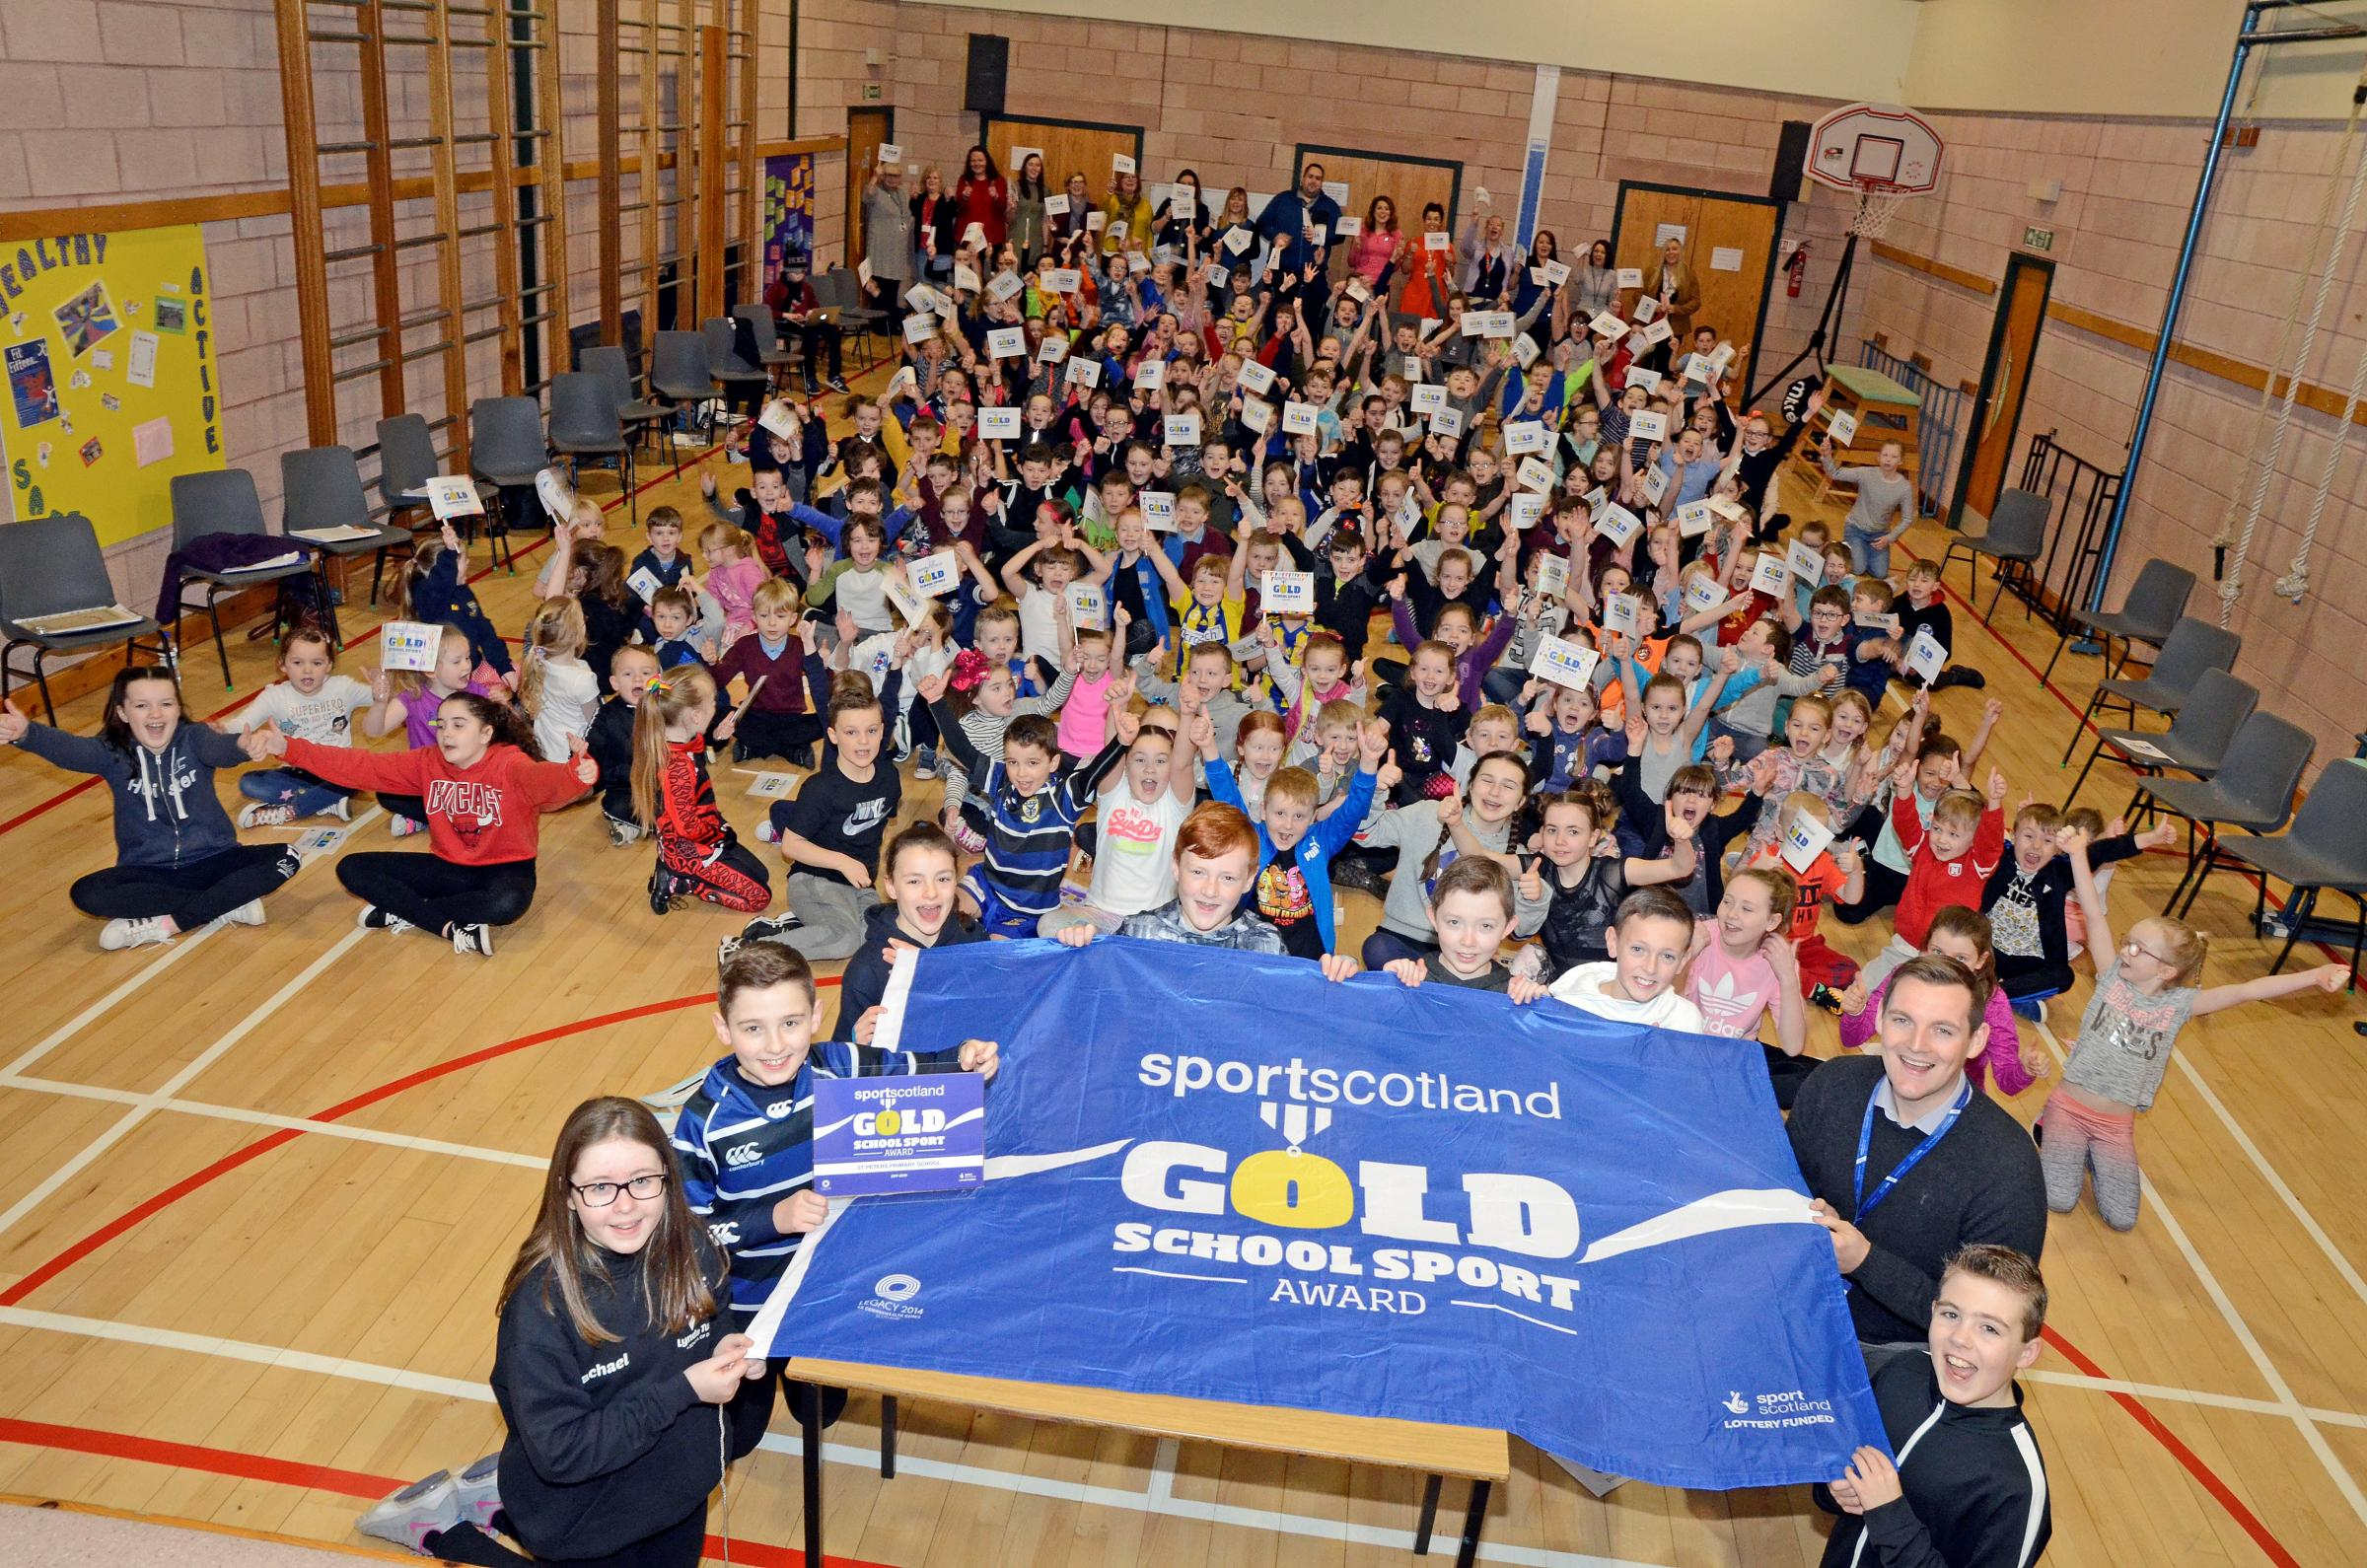 Second Gold sports award for St Peter's Primary School